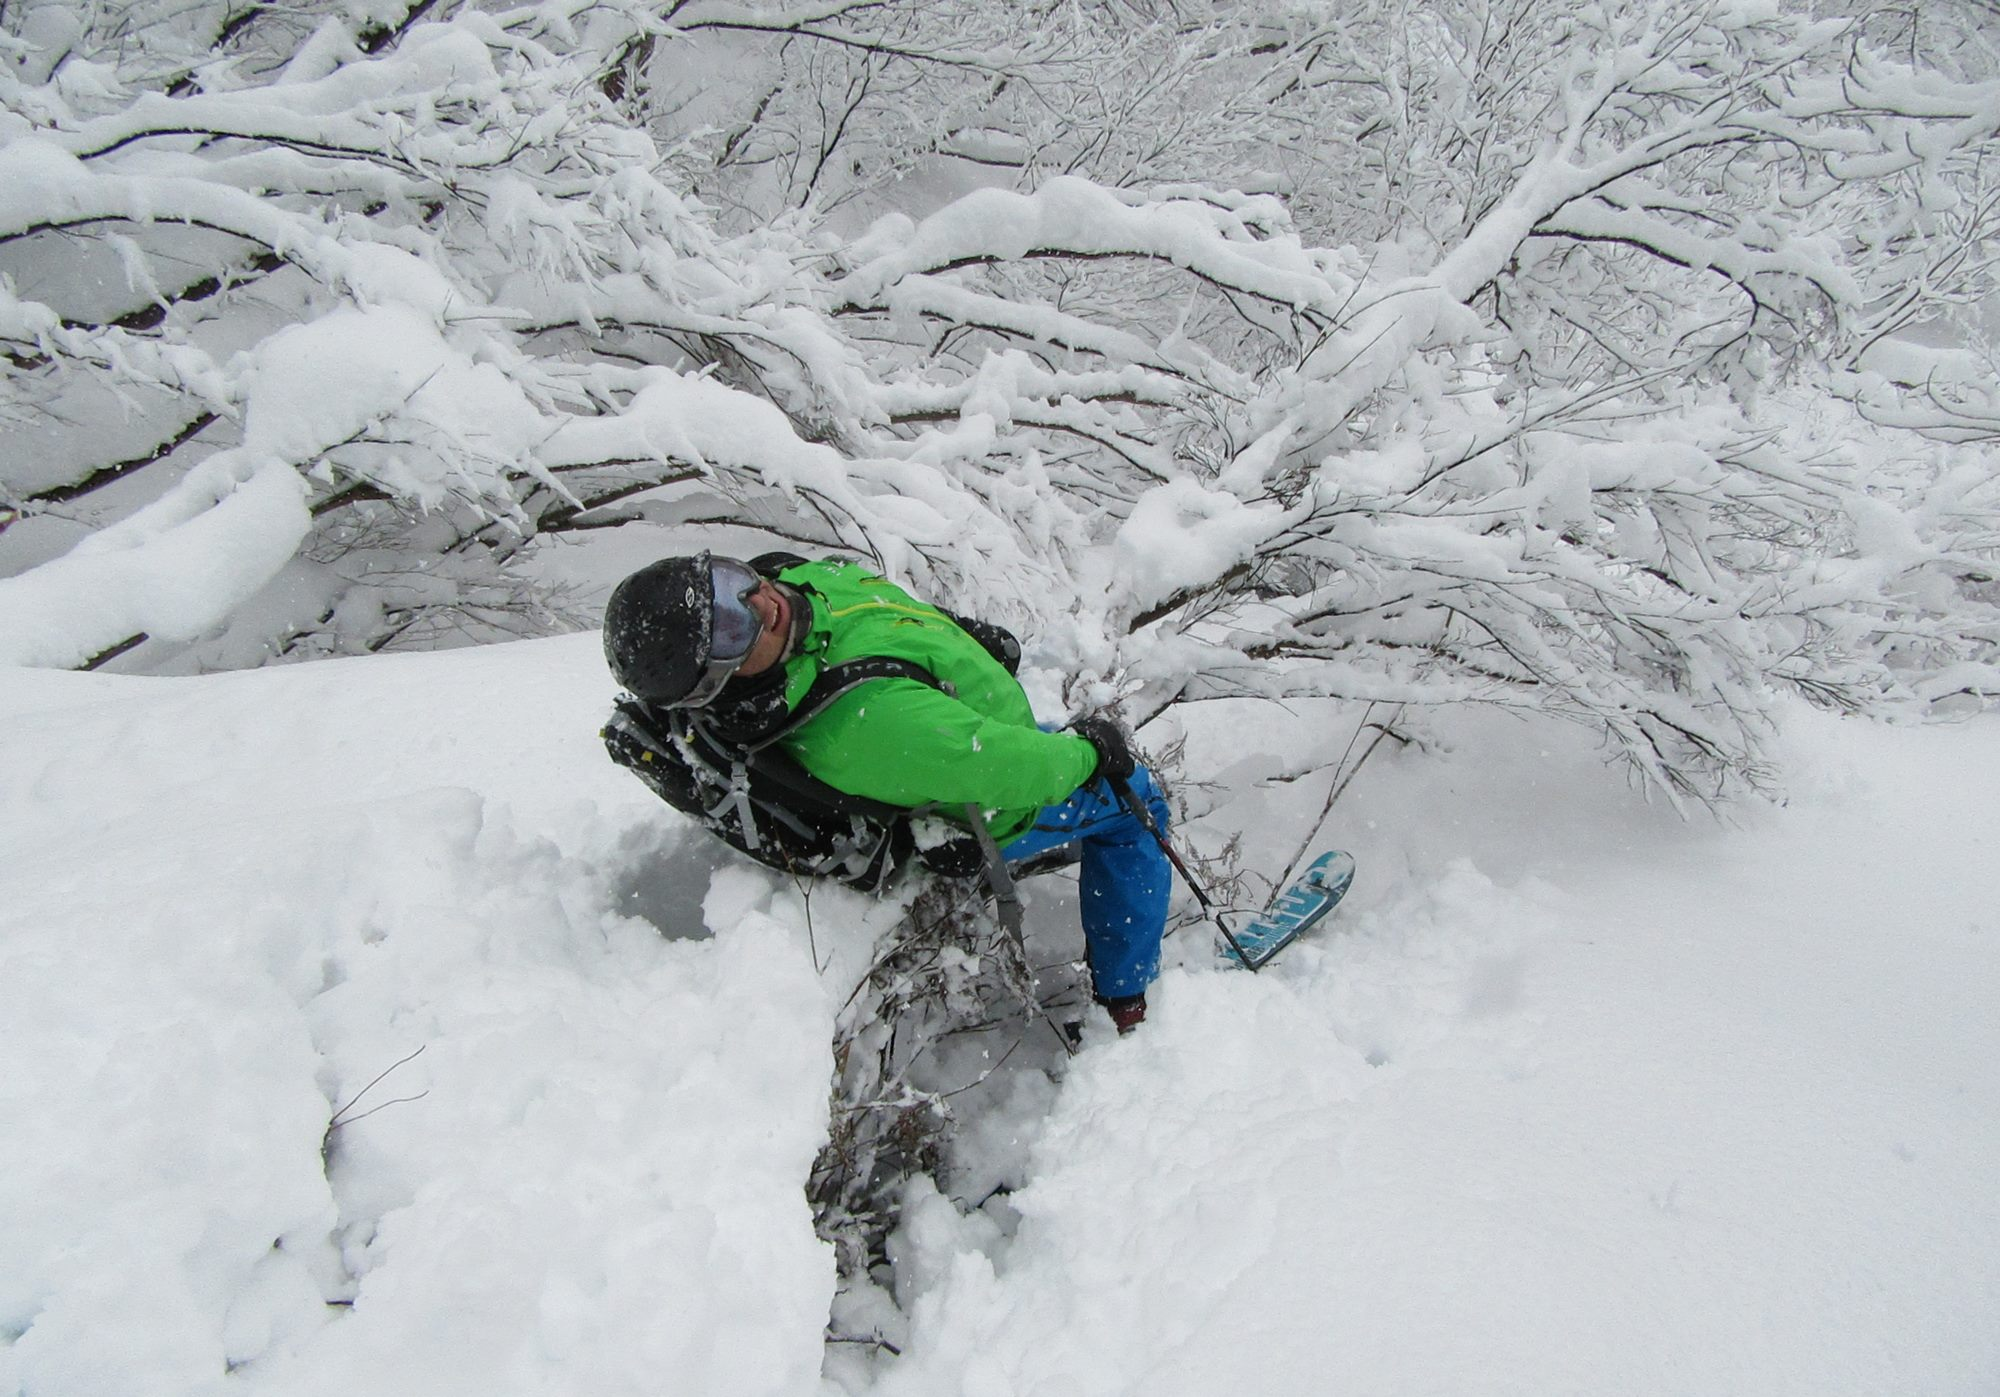 Greg from Powderhounds finds the perils of when the snow cover is rather thin in the trees. One leg went one way and the other went the other way...